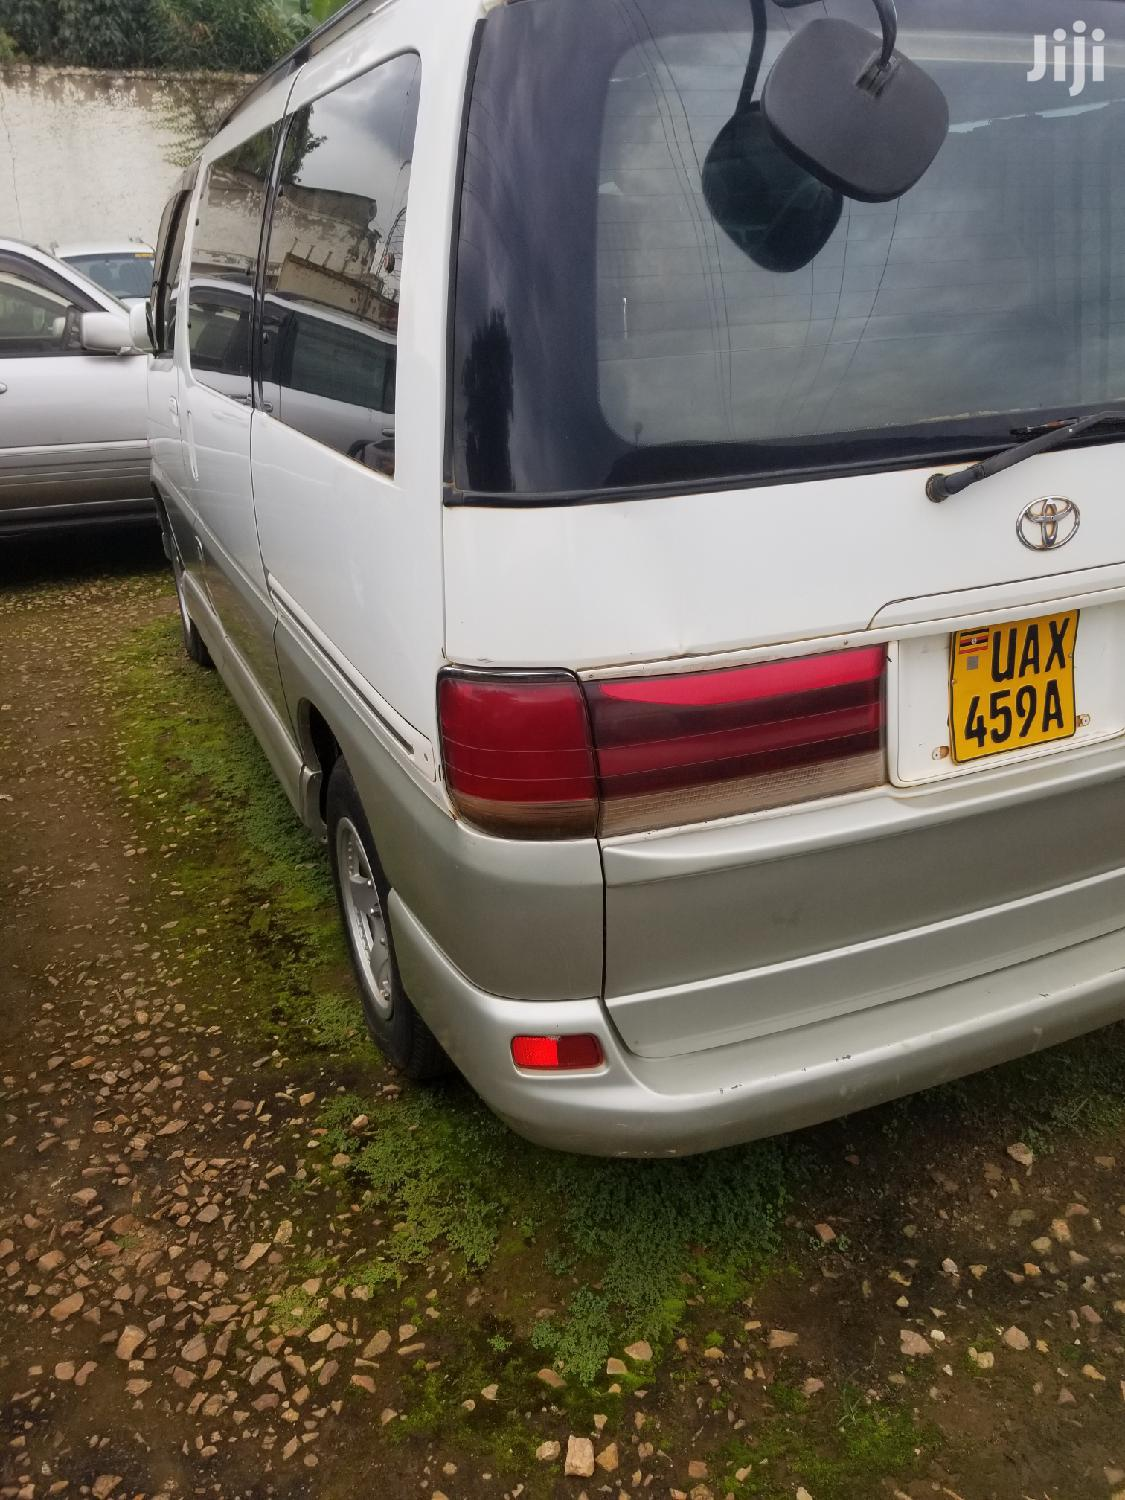 Toyota Regius Model 2001 | Buses & Microbuses for sale in Kampala, Central Region, Uganda